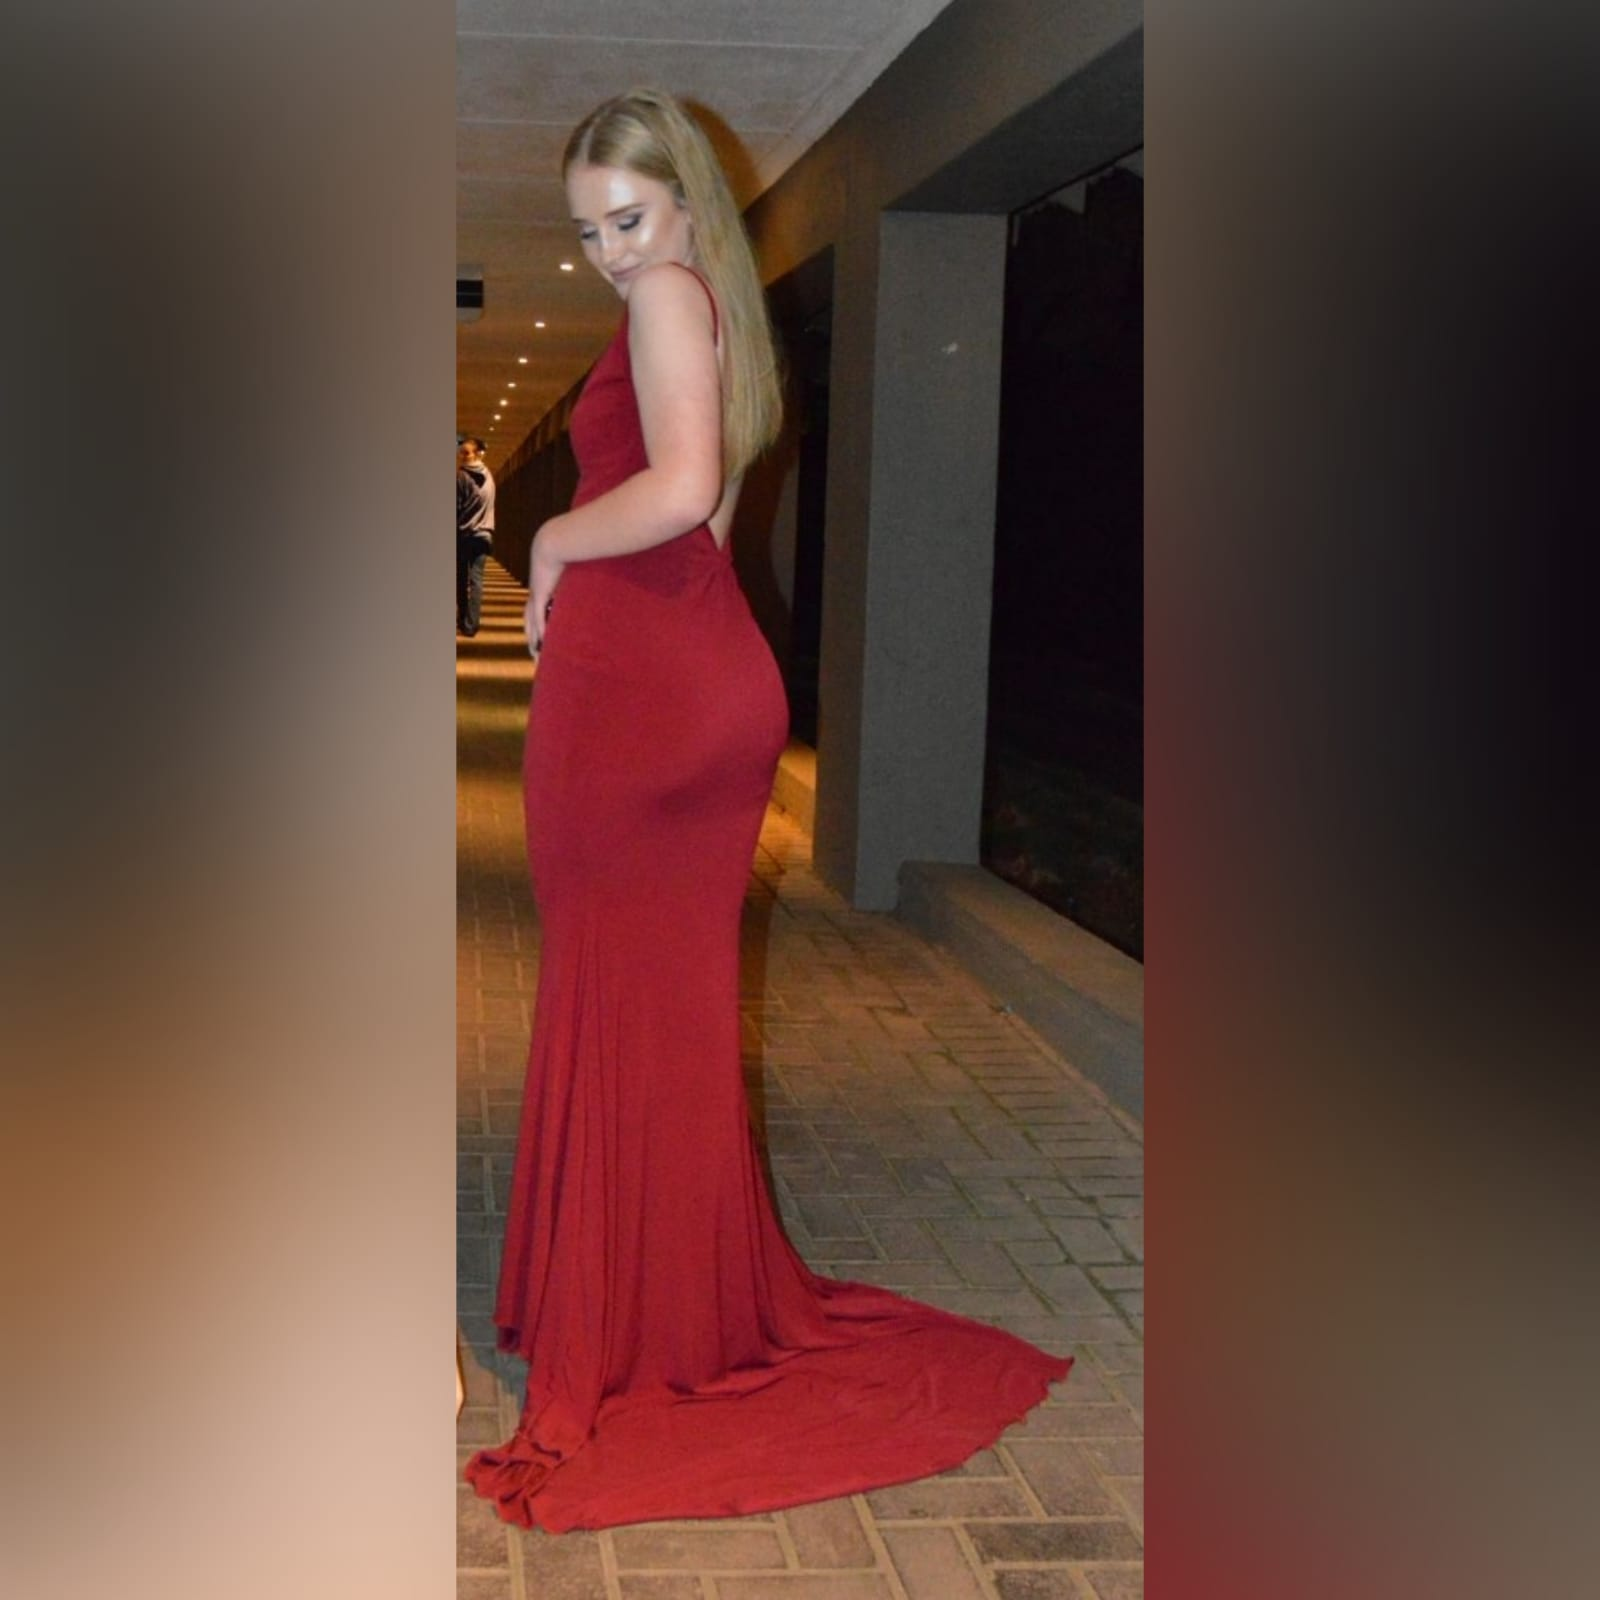 Deep red plunging neckline prom dress 9 deep red plunging neckline prom dress, low open back with thin should straps and a long train.